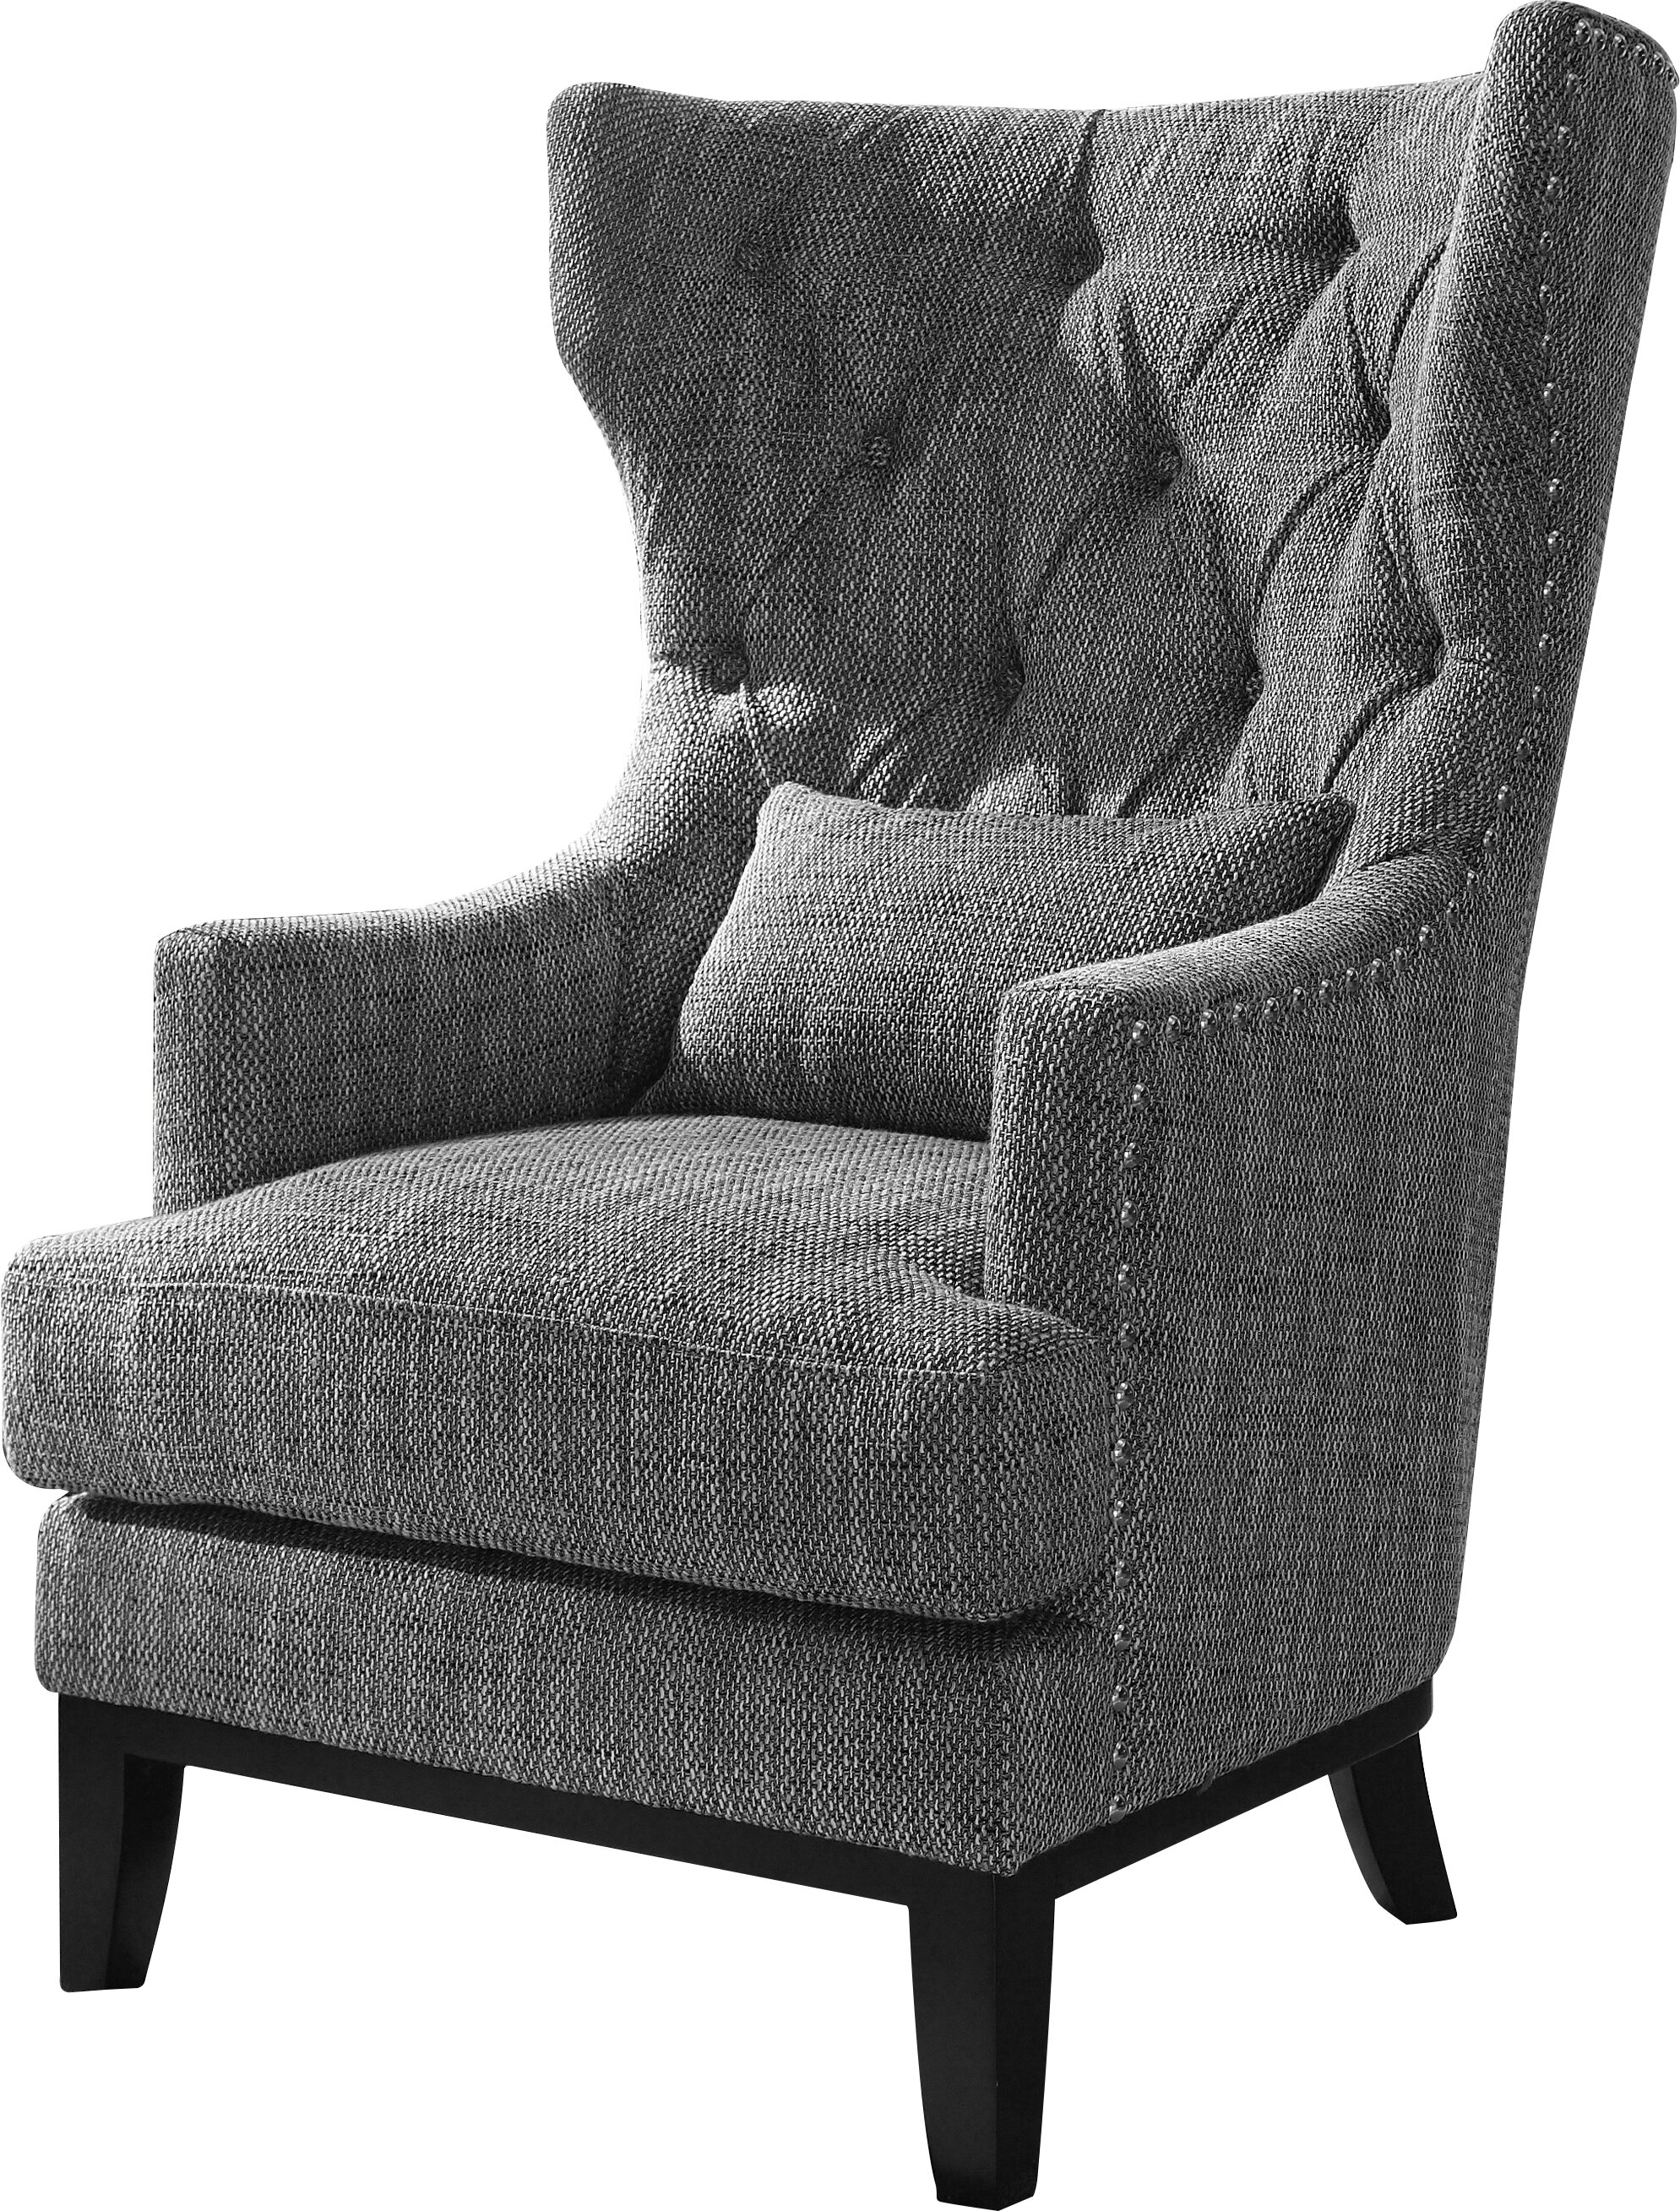 Patterned Wingback Chair New Decorating Ideas